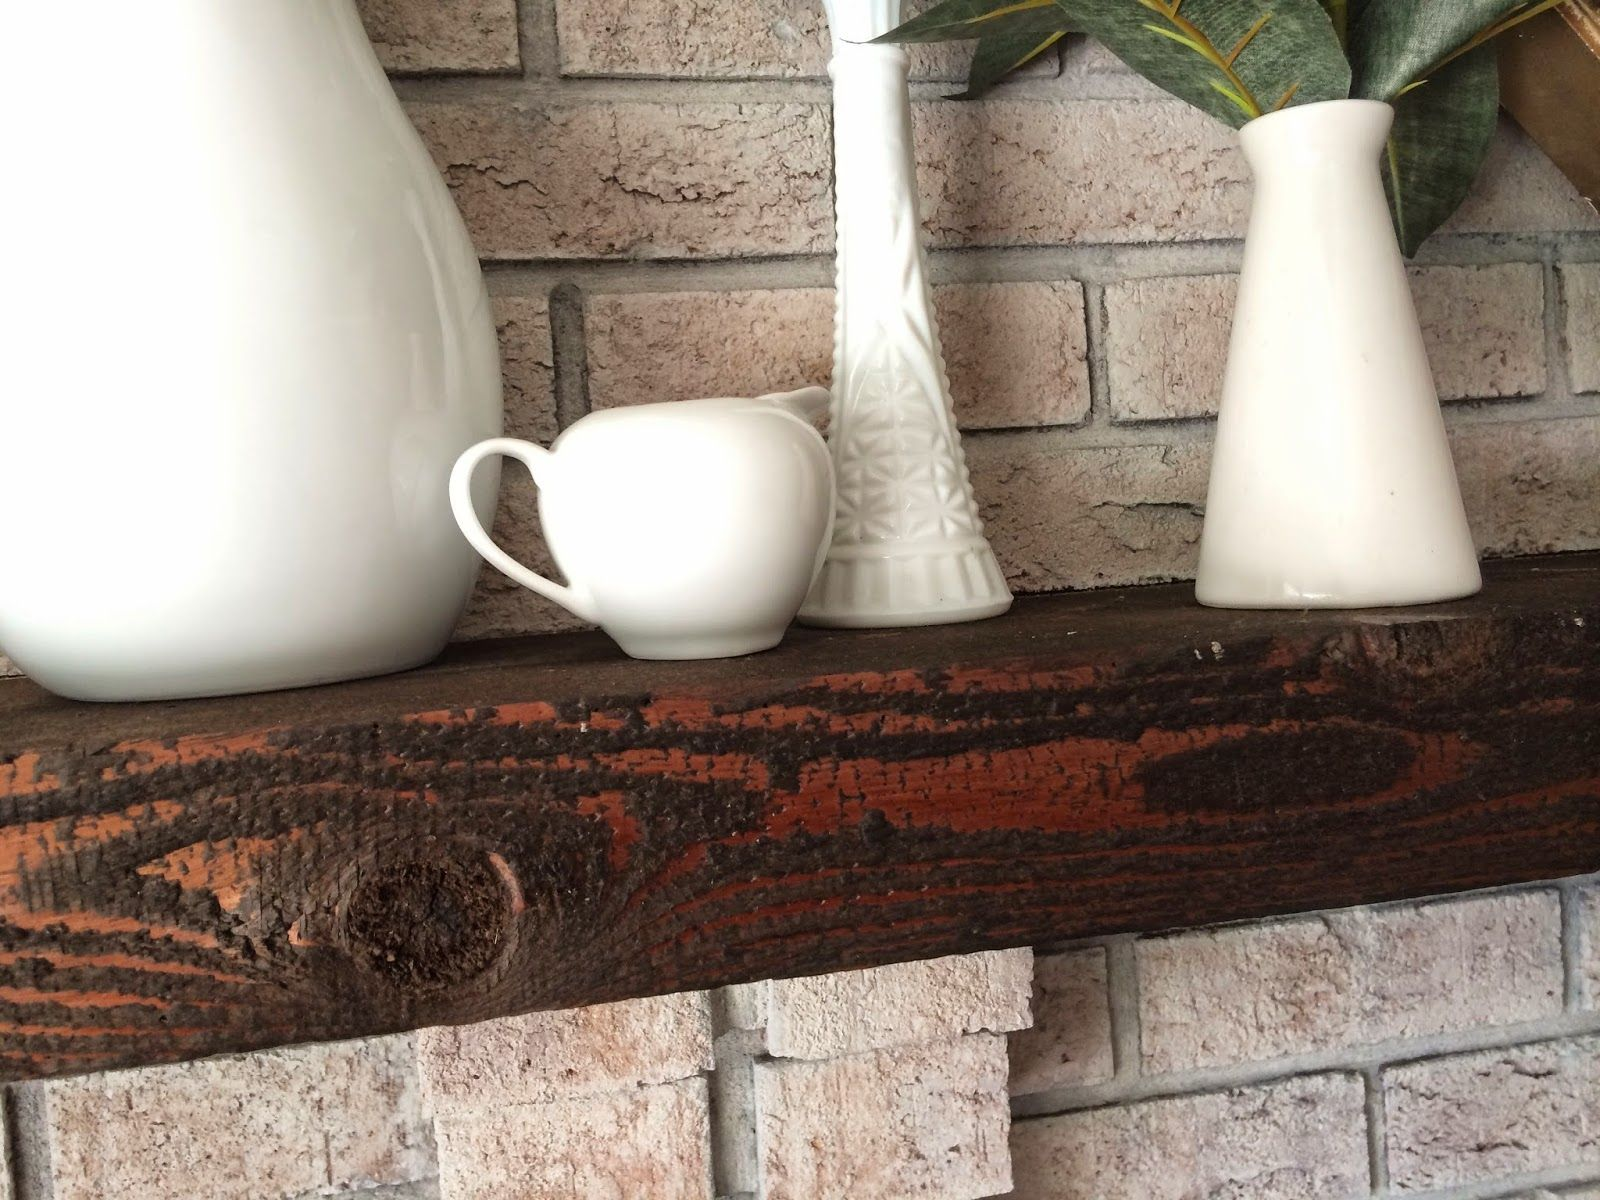 Staining a dated mantle //Walking with Dancers: The Family Room's Fire Place Update